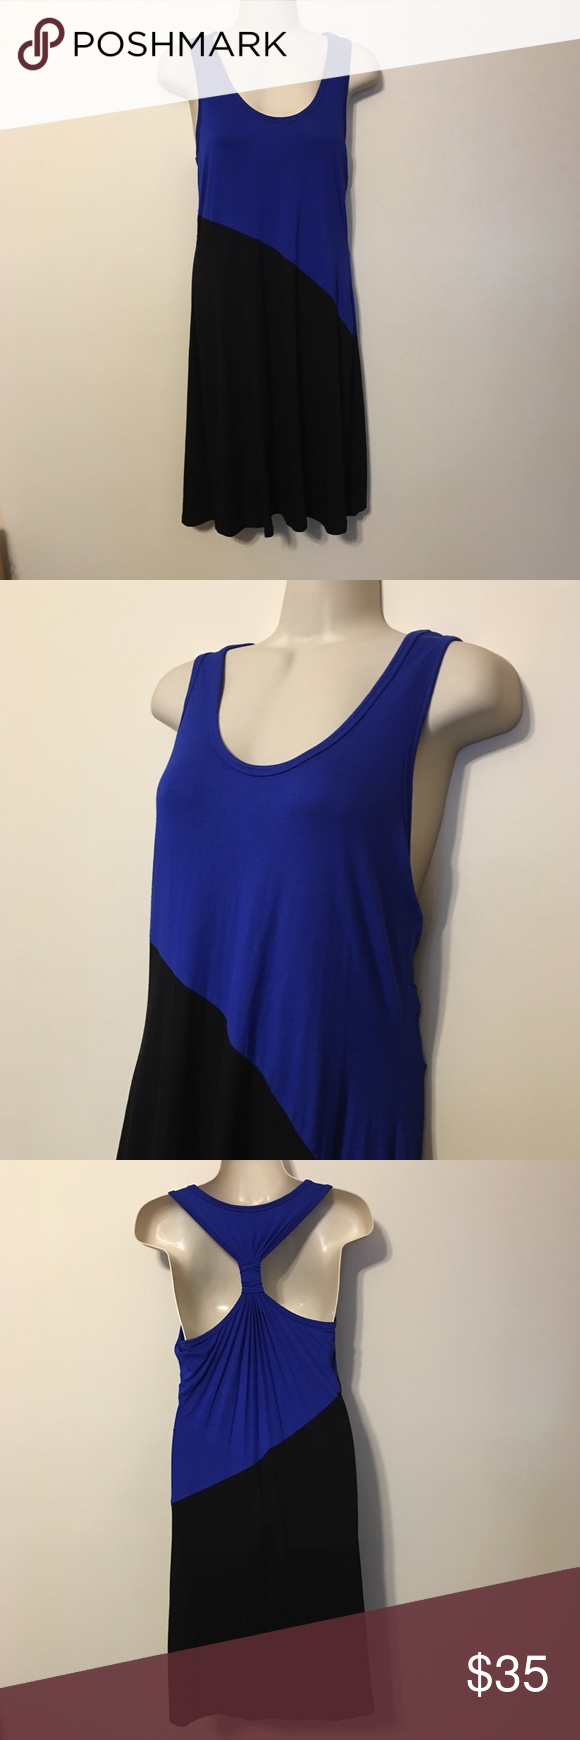 Calvin Klein Black & Blue Colorblock Dress Calvin Klein Black & Blue Colorblock Racerback Dress Calvin Klein Dresses Midi